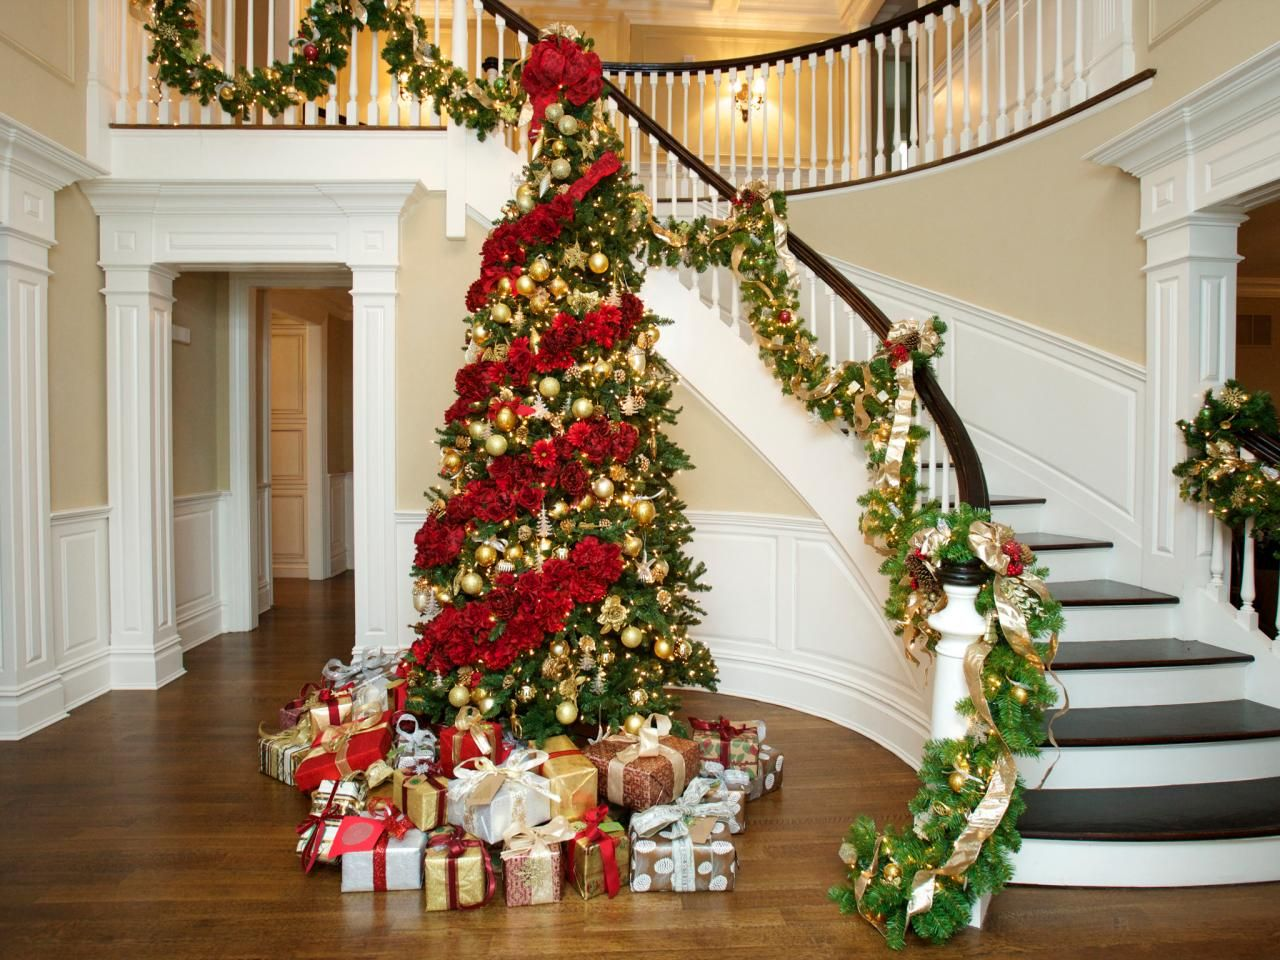 Celebrity Holiday Homes Christmas Tree Decoration Ideas 2018